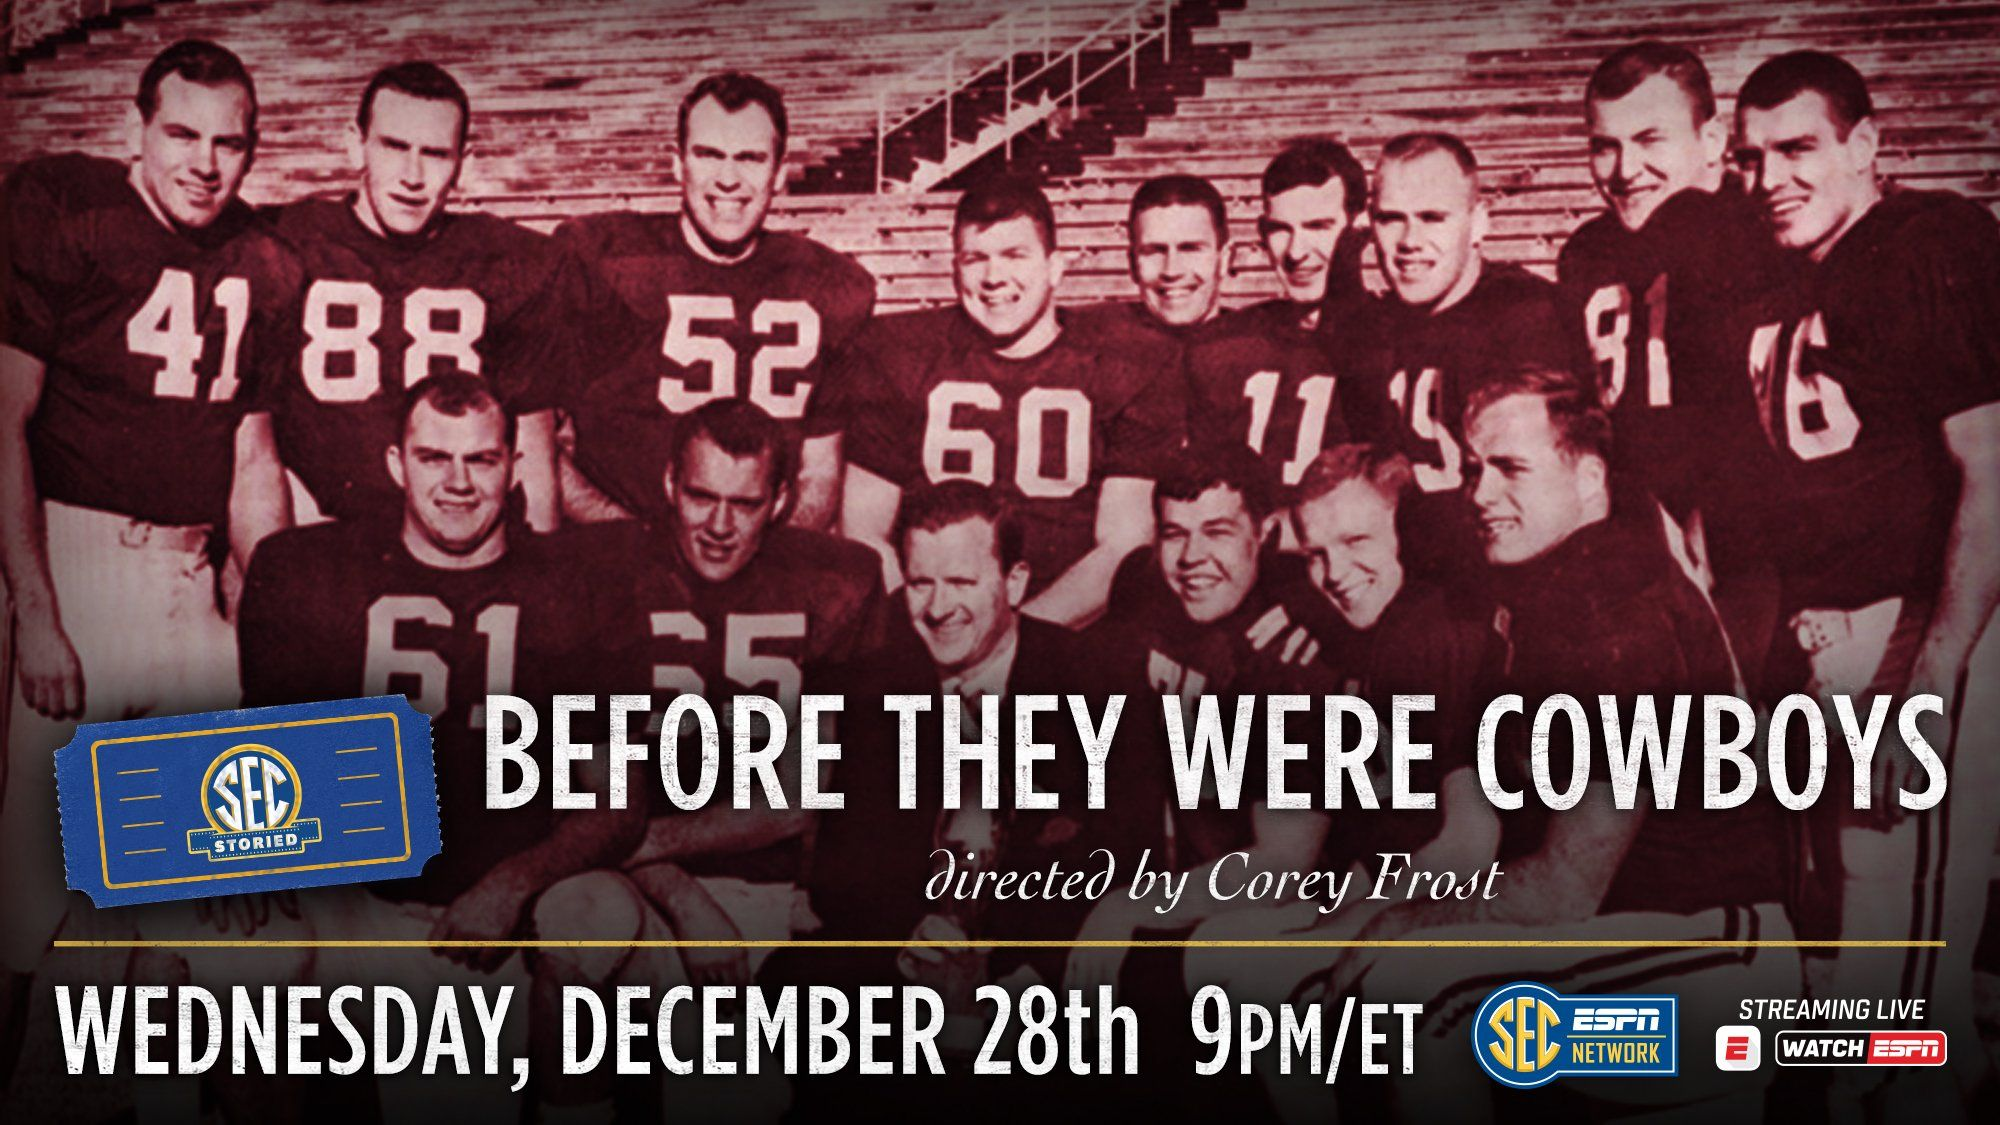 SEC Storied continues with 'Before They Were Cowboys'